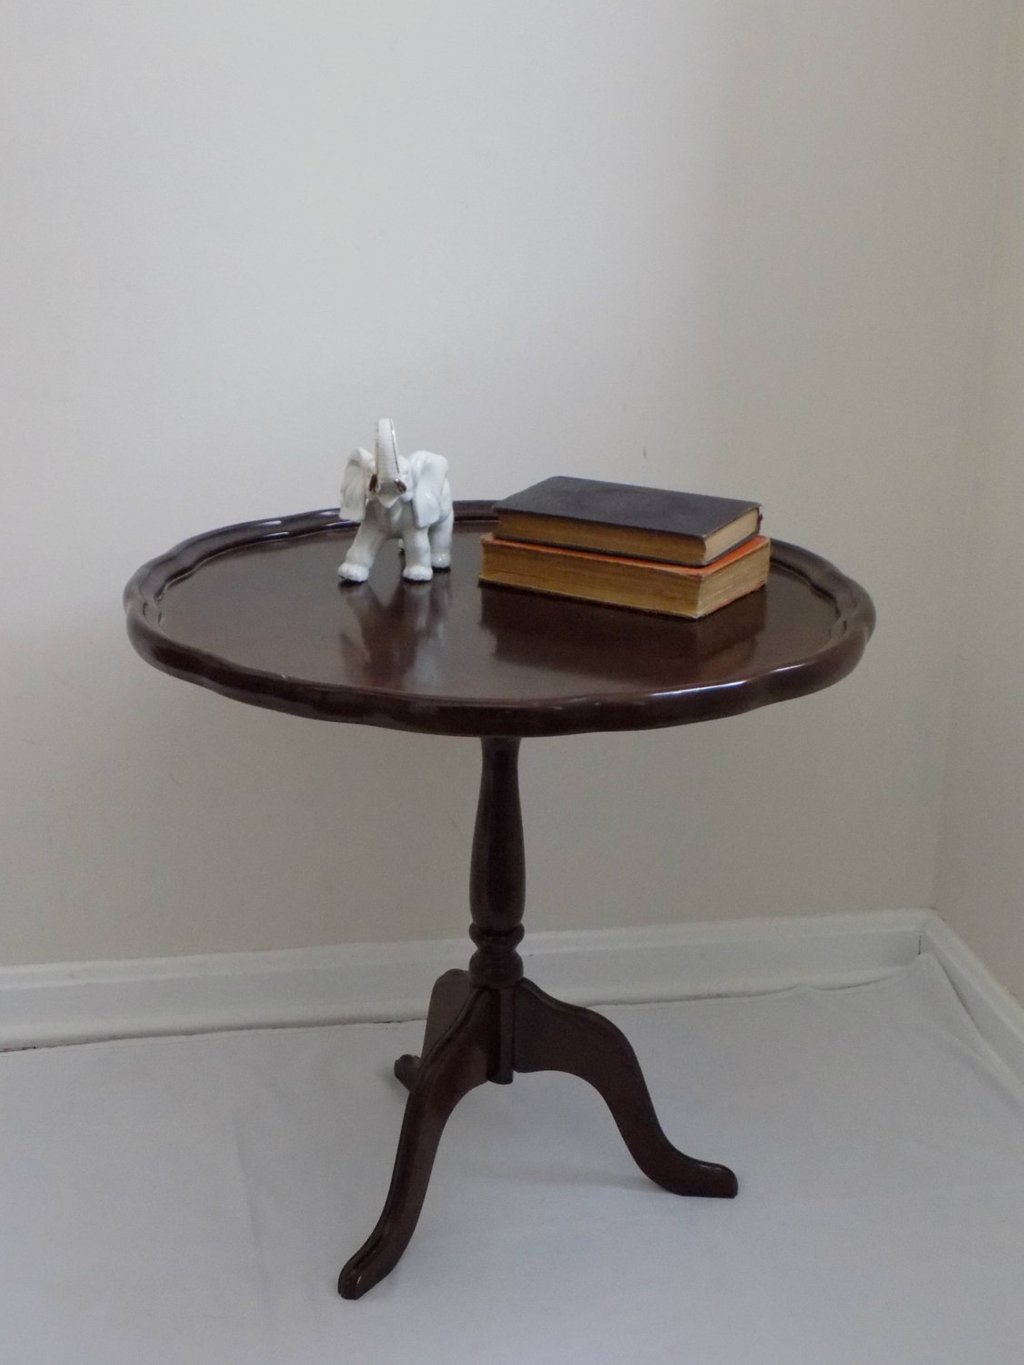 antique marble top end tables loccie better homes gardens ideas mid century queen anne style pie crust parlor tilt victorian accent table pottery barn slipcover sofa magnussen